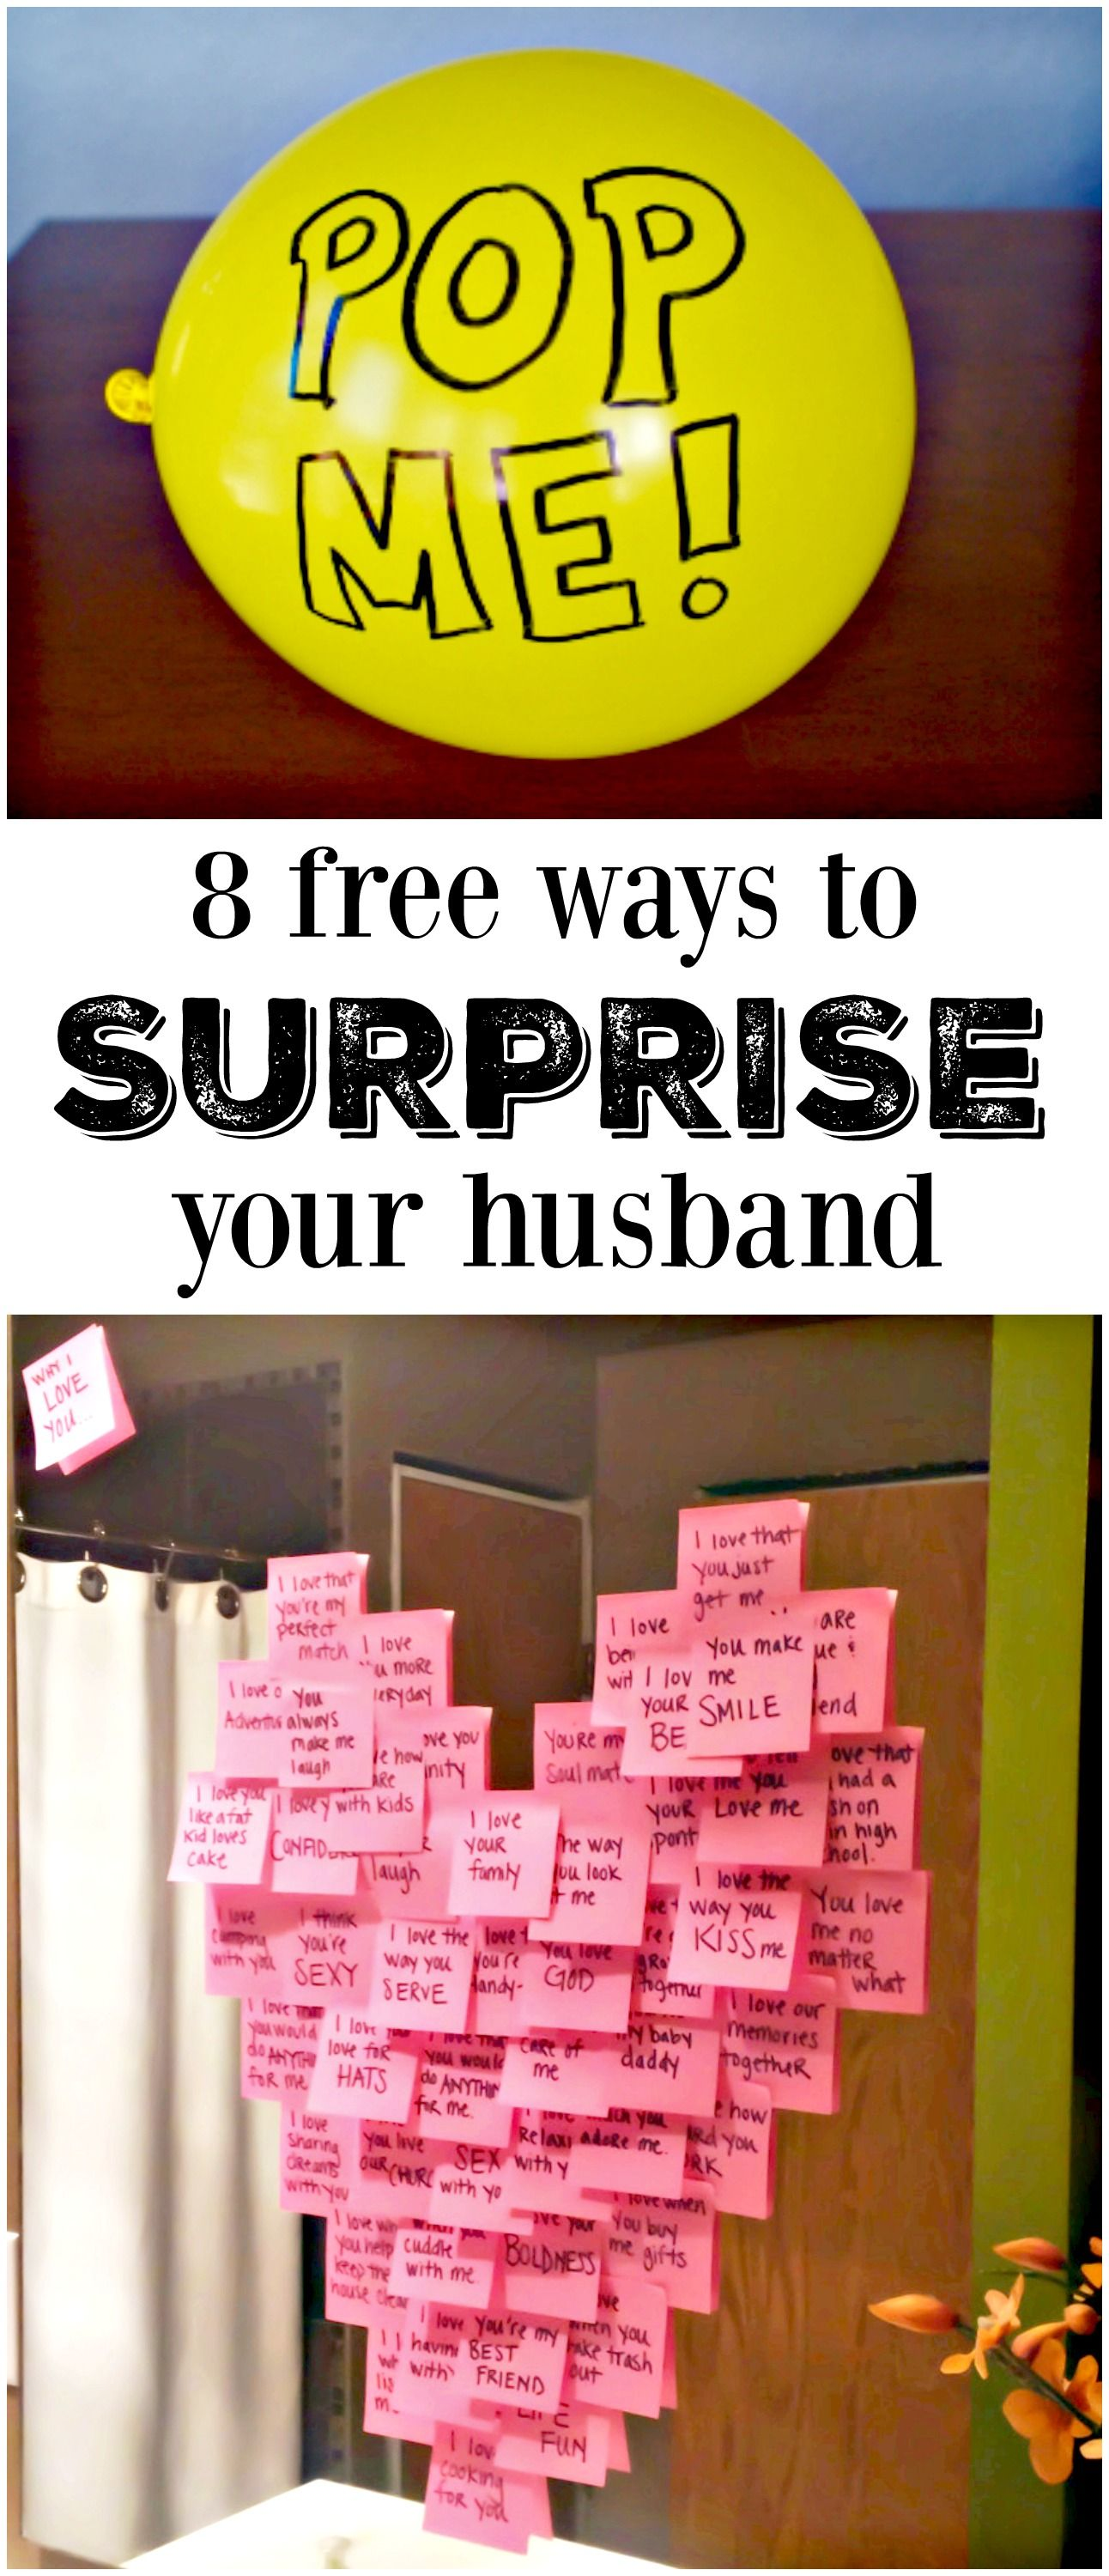 Agree, Sexy ways to surprise him you tell